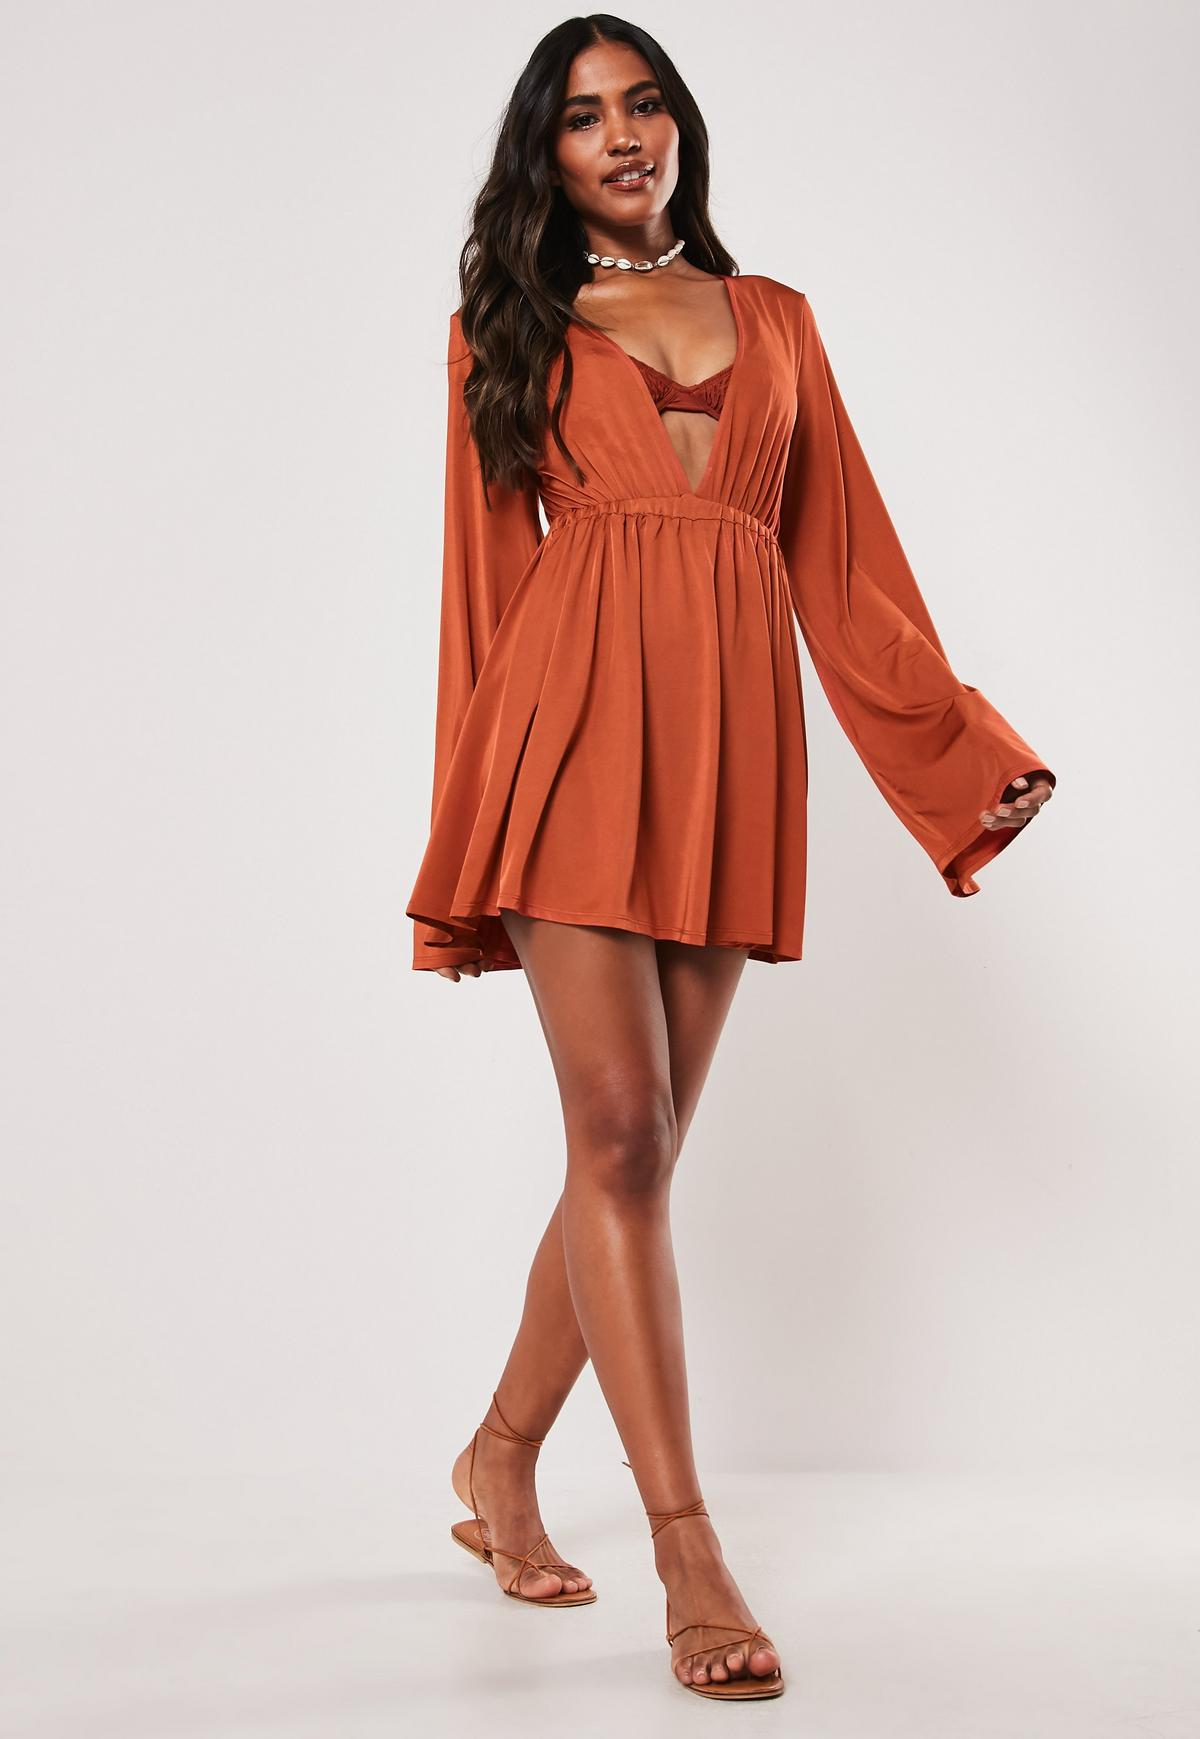 new lifestyle 2018 shoes where to buy Rust Extreme Plunge Beach Cover Up Mini Dress | Missguided